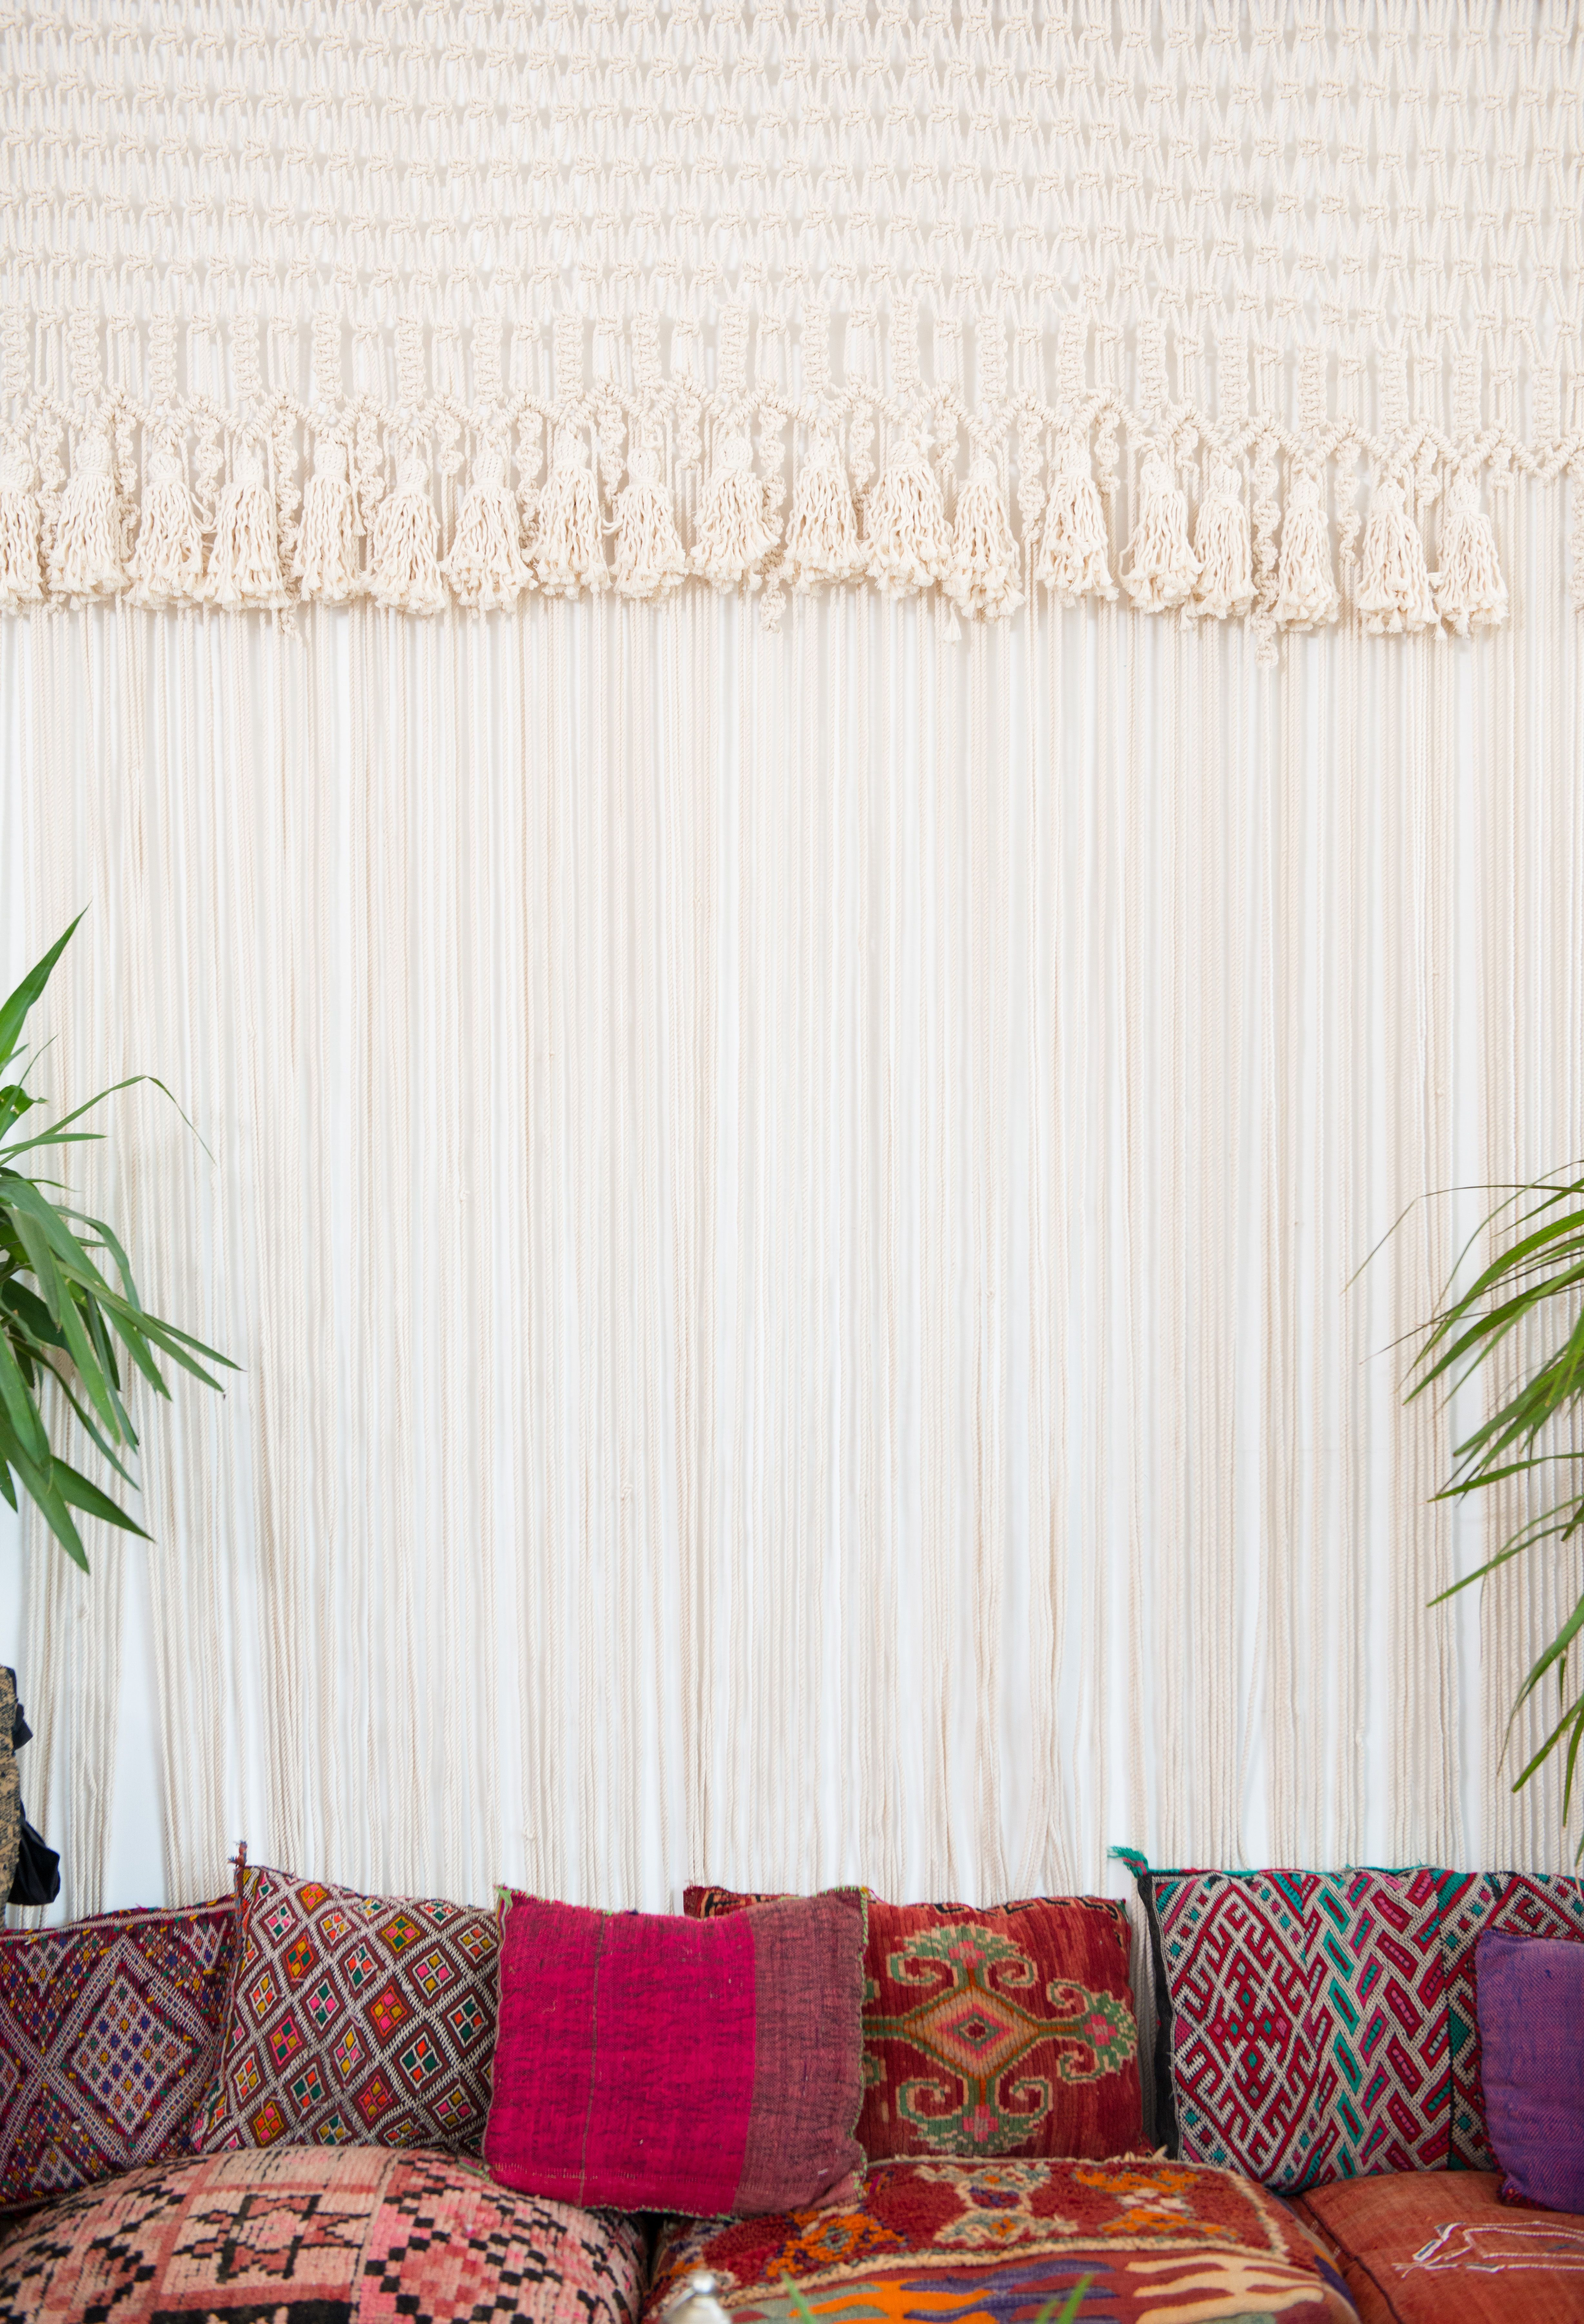 moroccan floor seating. Macrame Curtains, Moroccan Floor + Throw Pillows Make For An Easy Seating Area | Patina